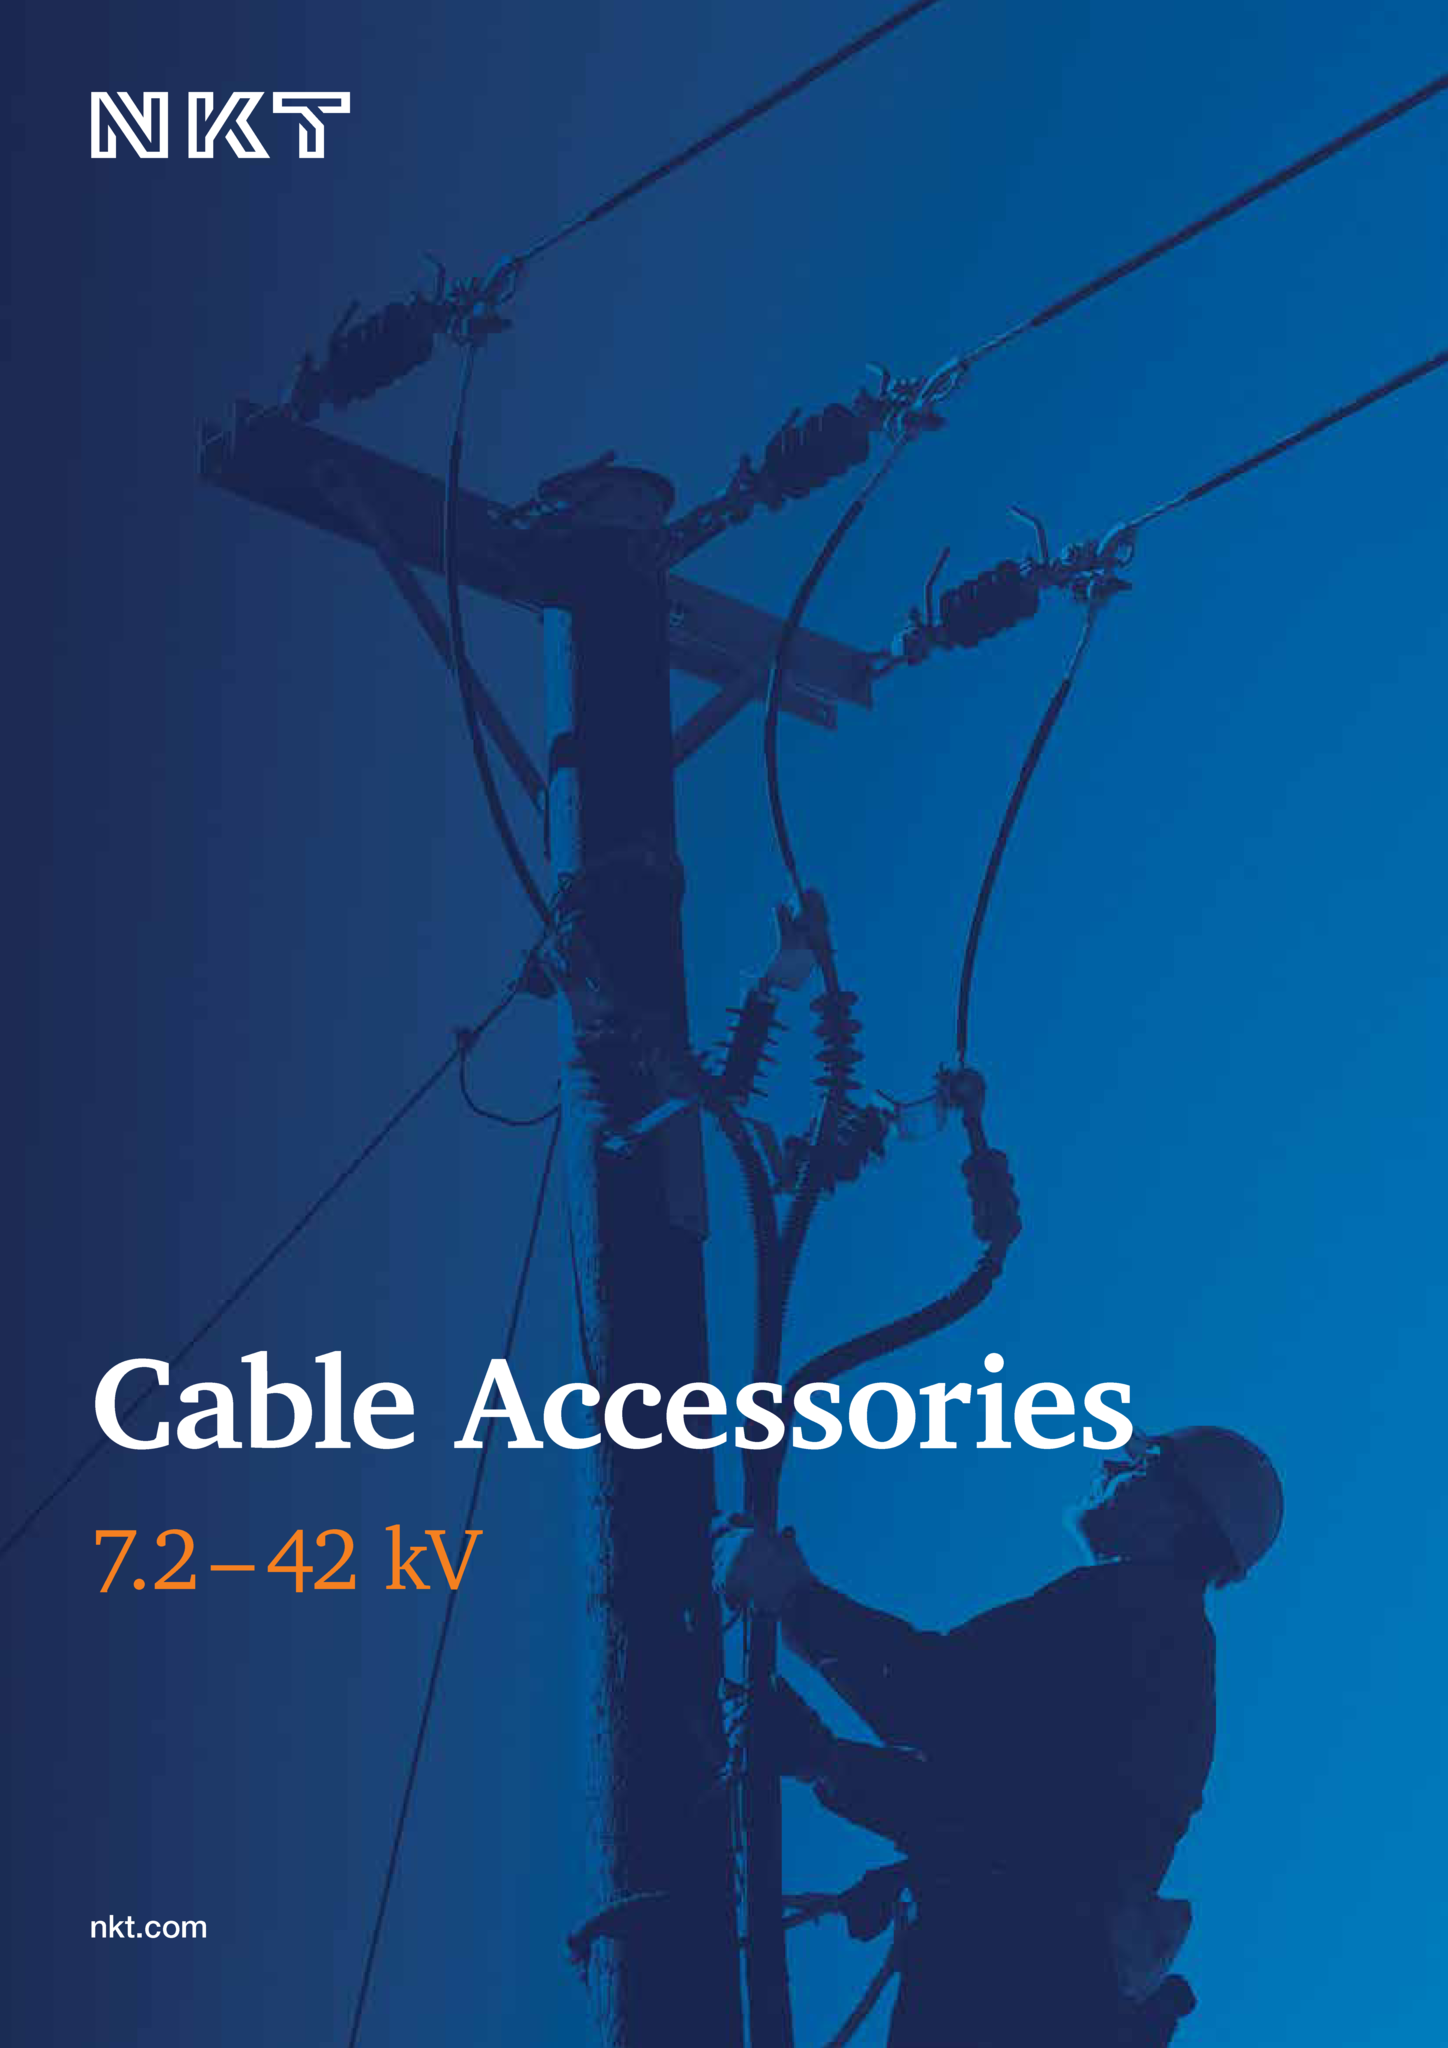 NKT_Katalog_Cable_Accessories_7.2_42kV_English.pdf